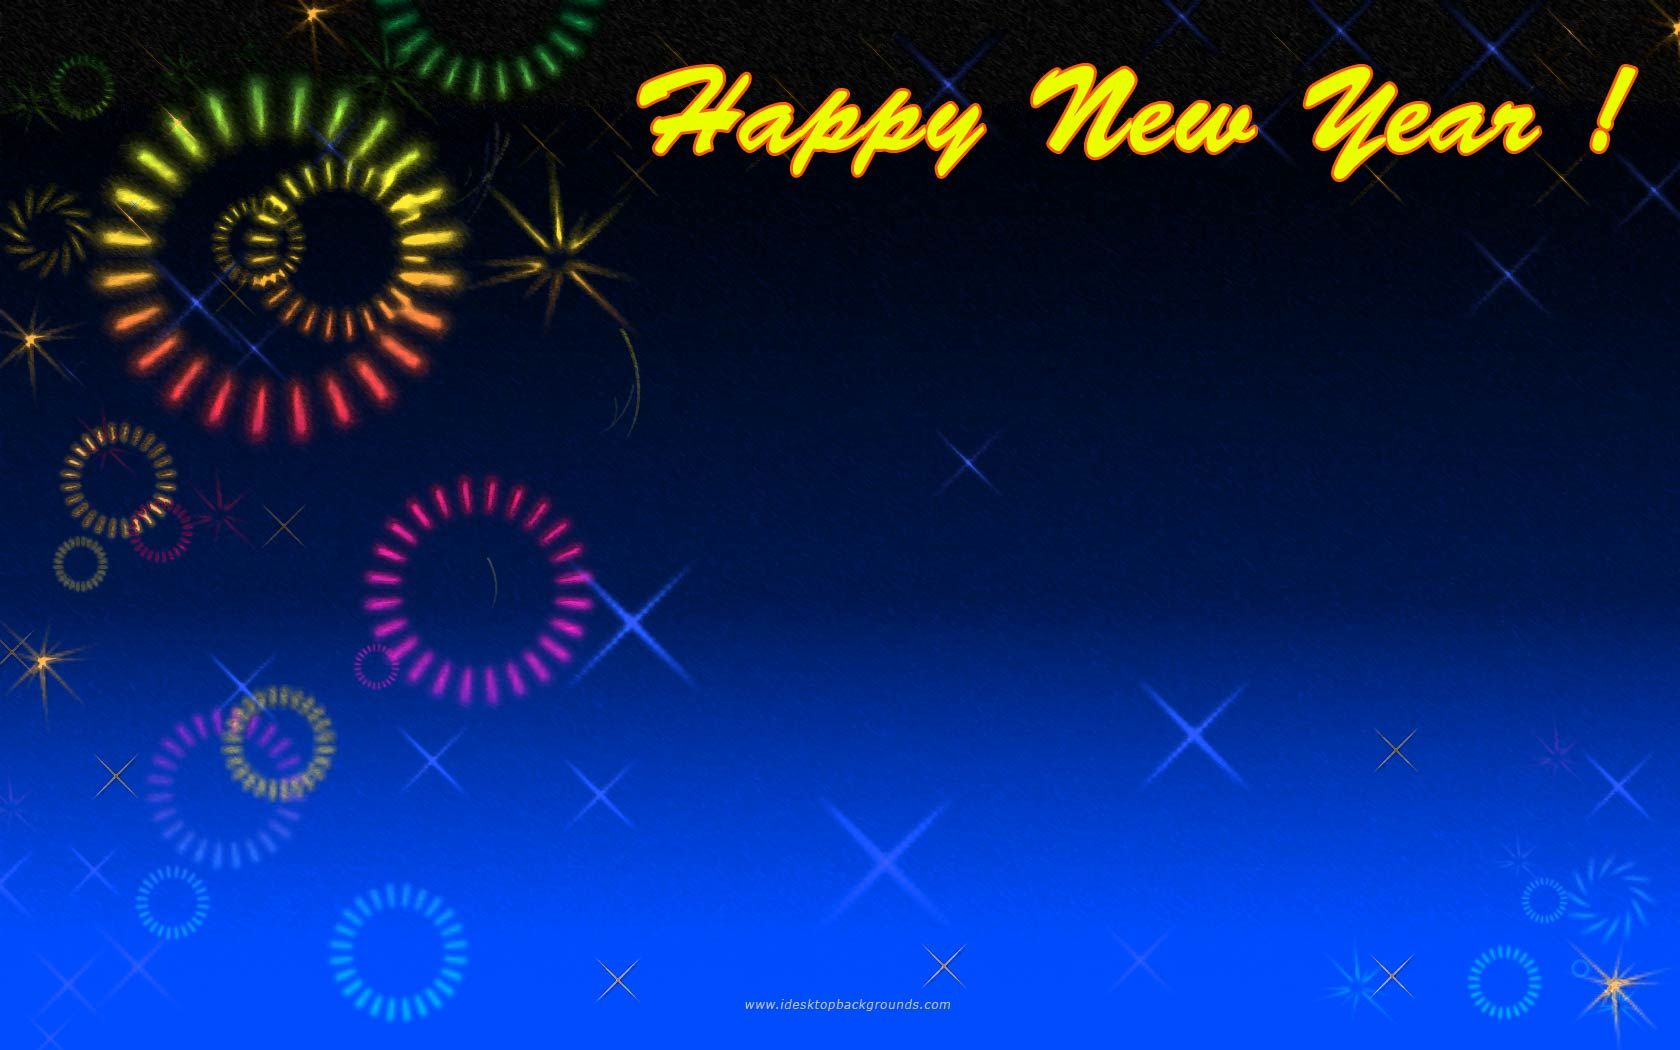 Happy New Year Background Wallpapers At Http://www